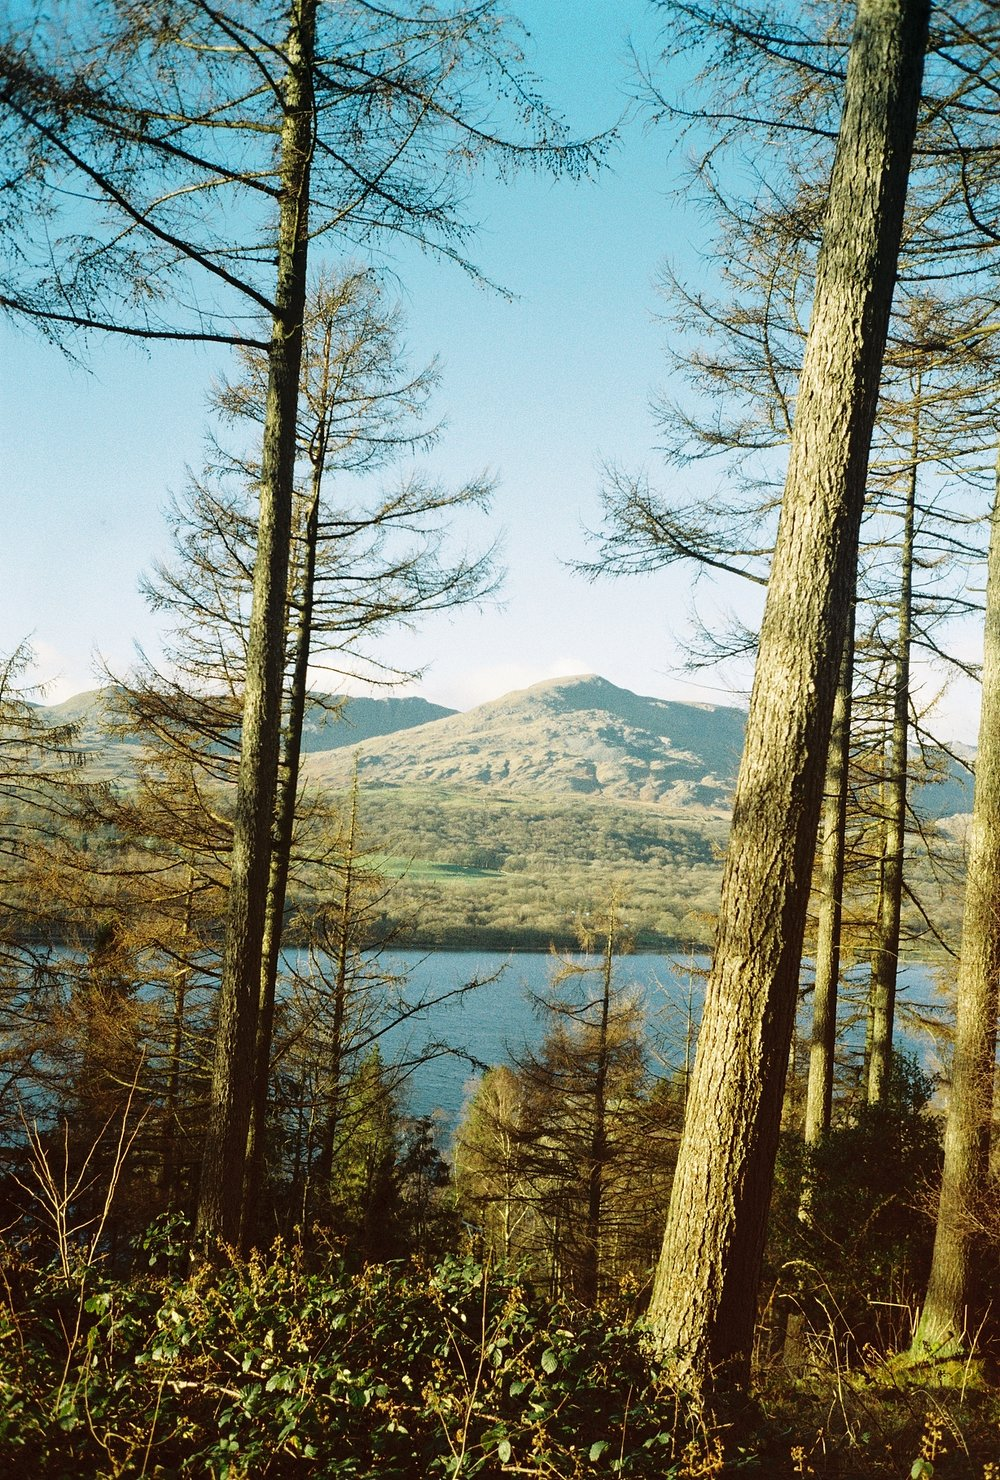 The view of Coniston